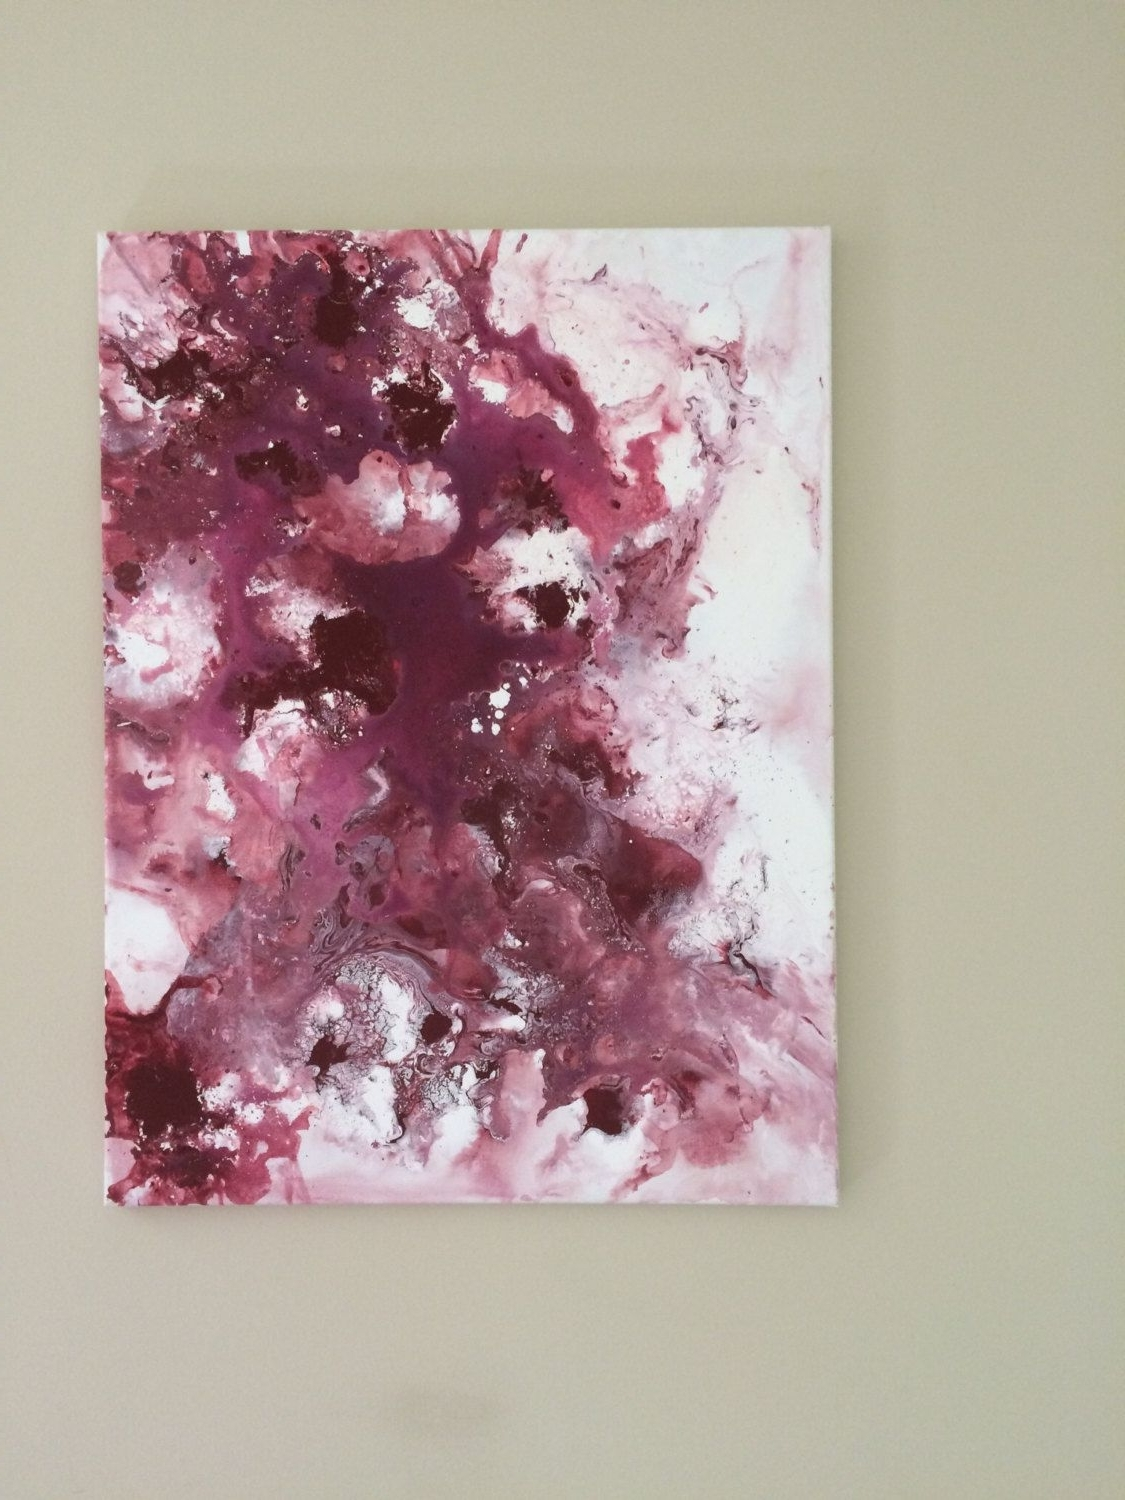 Widely Used Abstract Flow Art Burgundy Painting Large Fluid Painting Original Inside Burgundy Wall Art (View 14 of 15)